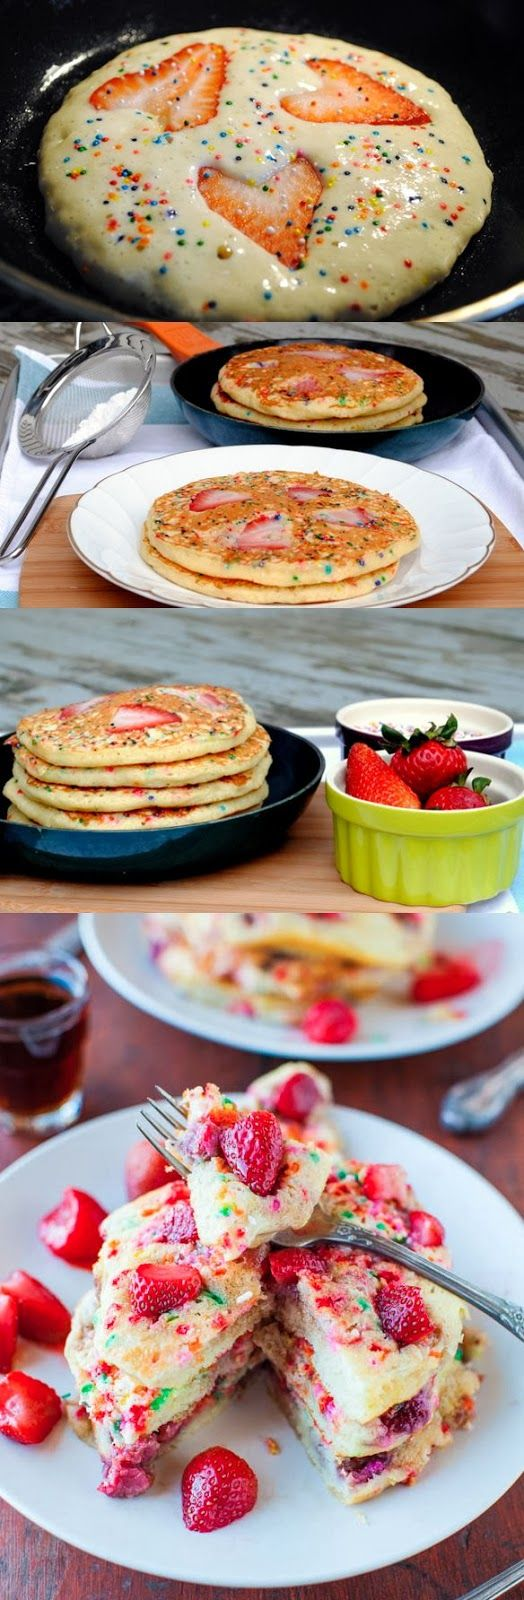 How To Strawberry Sprinkle Funfetti Pancakes